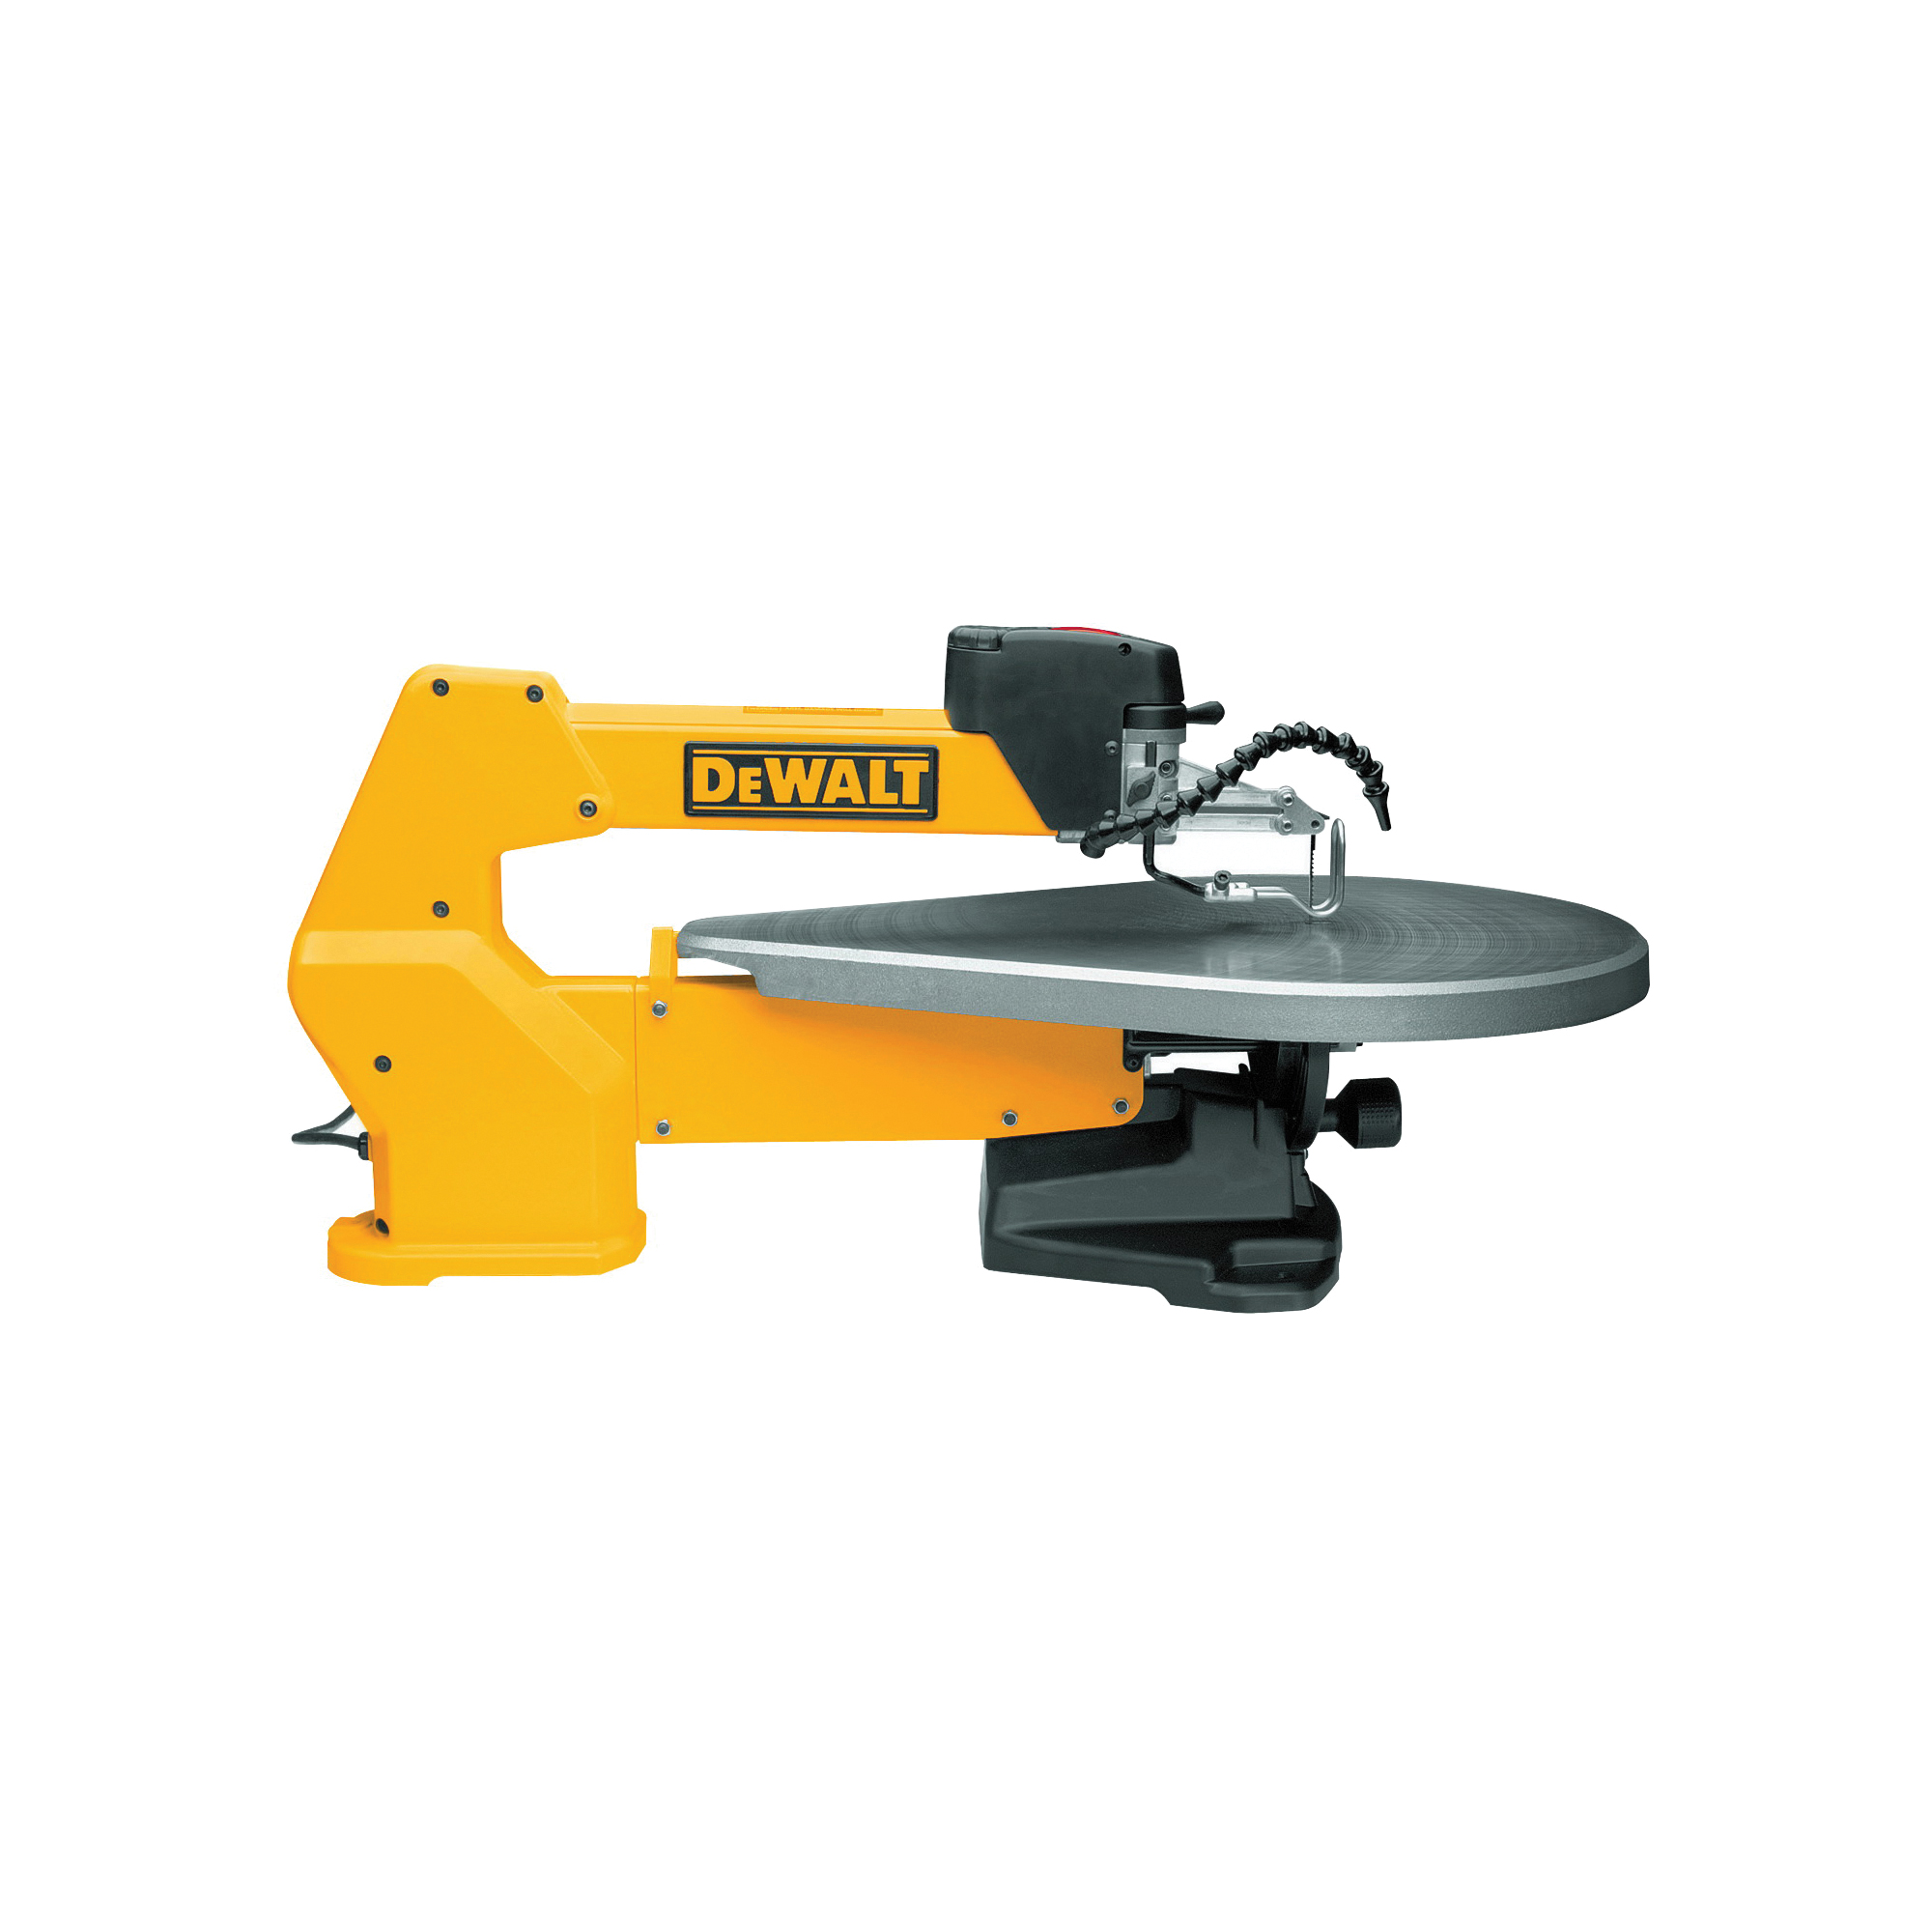 Picture of DeWALT DW788 Scroll Saw, 120 V, 1.3 A, 5 in L Blade, 13/16 in Cutting Capacity, 400 to 1750 spm SPM